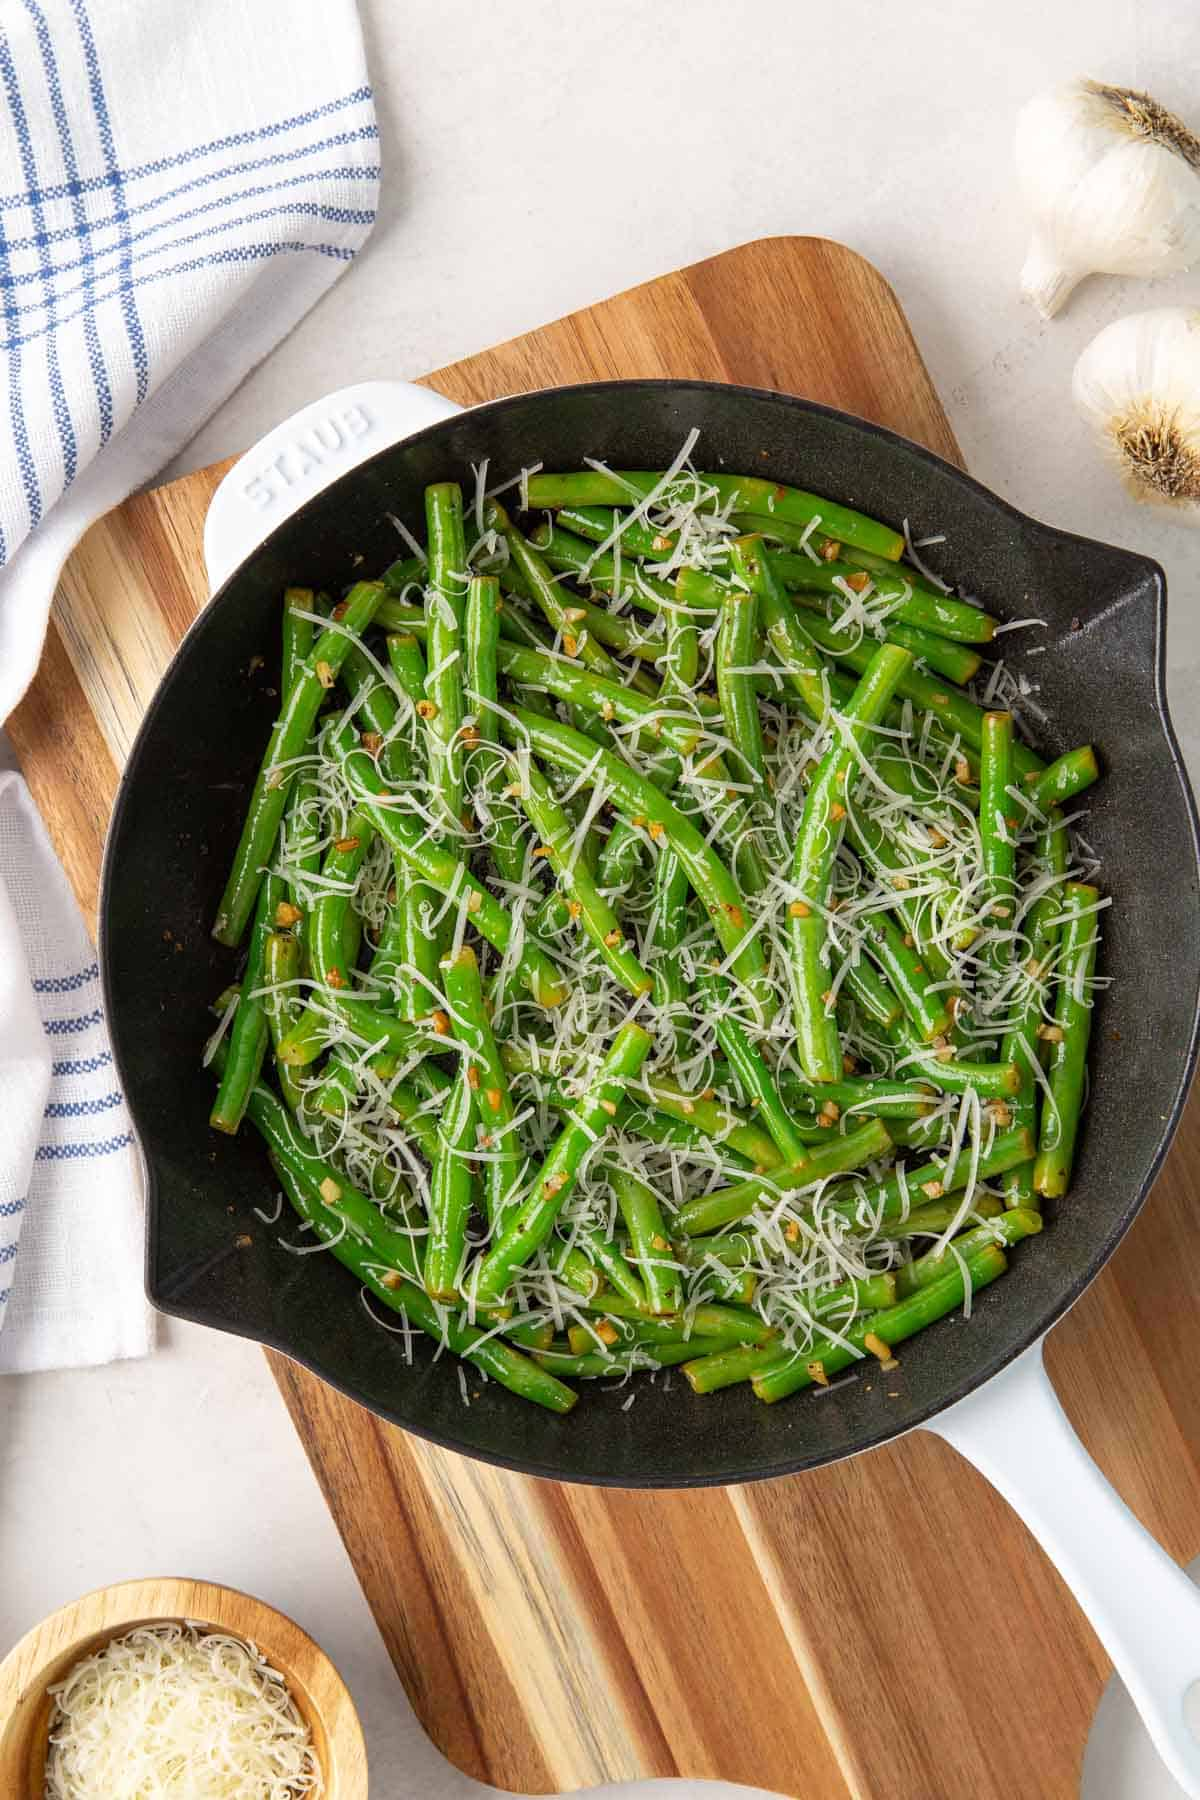 Overhead view of garlic green beans sprinkled with Parmesan in a white skillet.